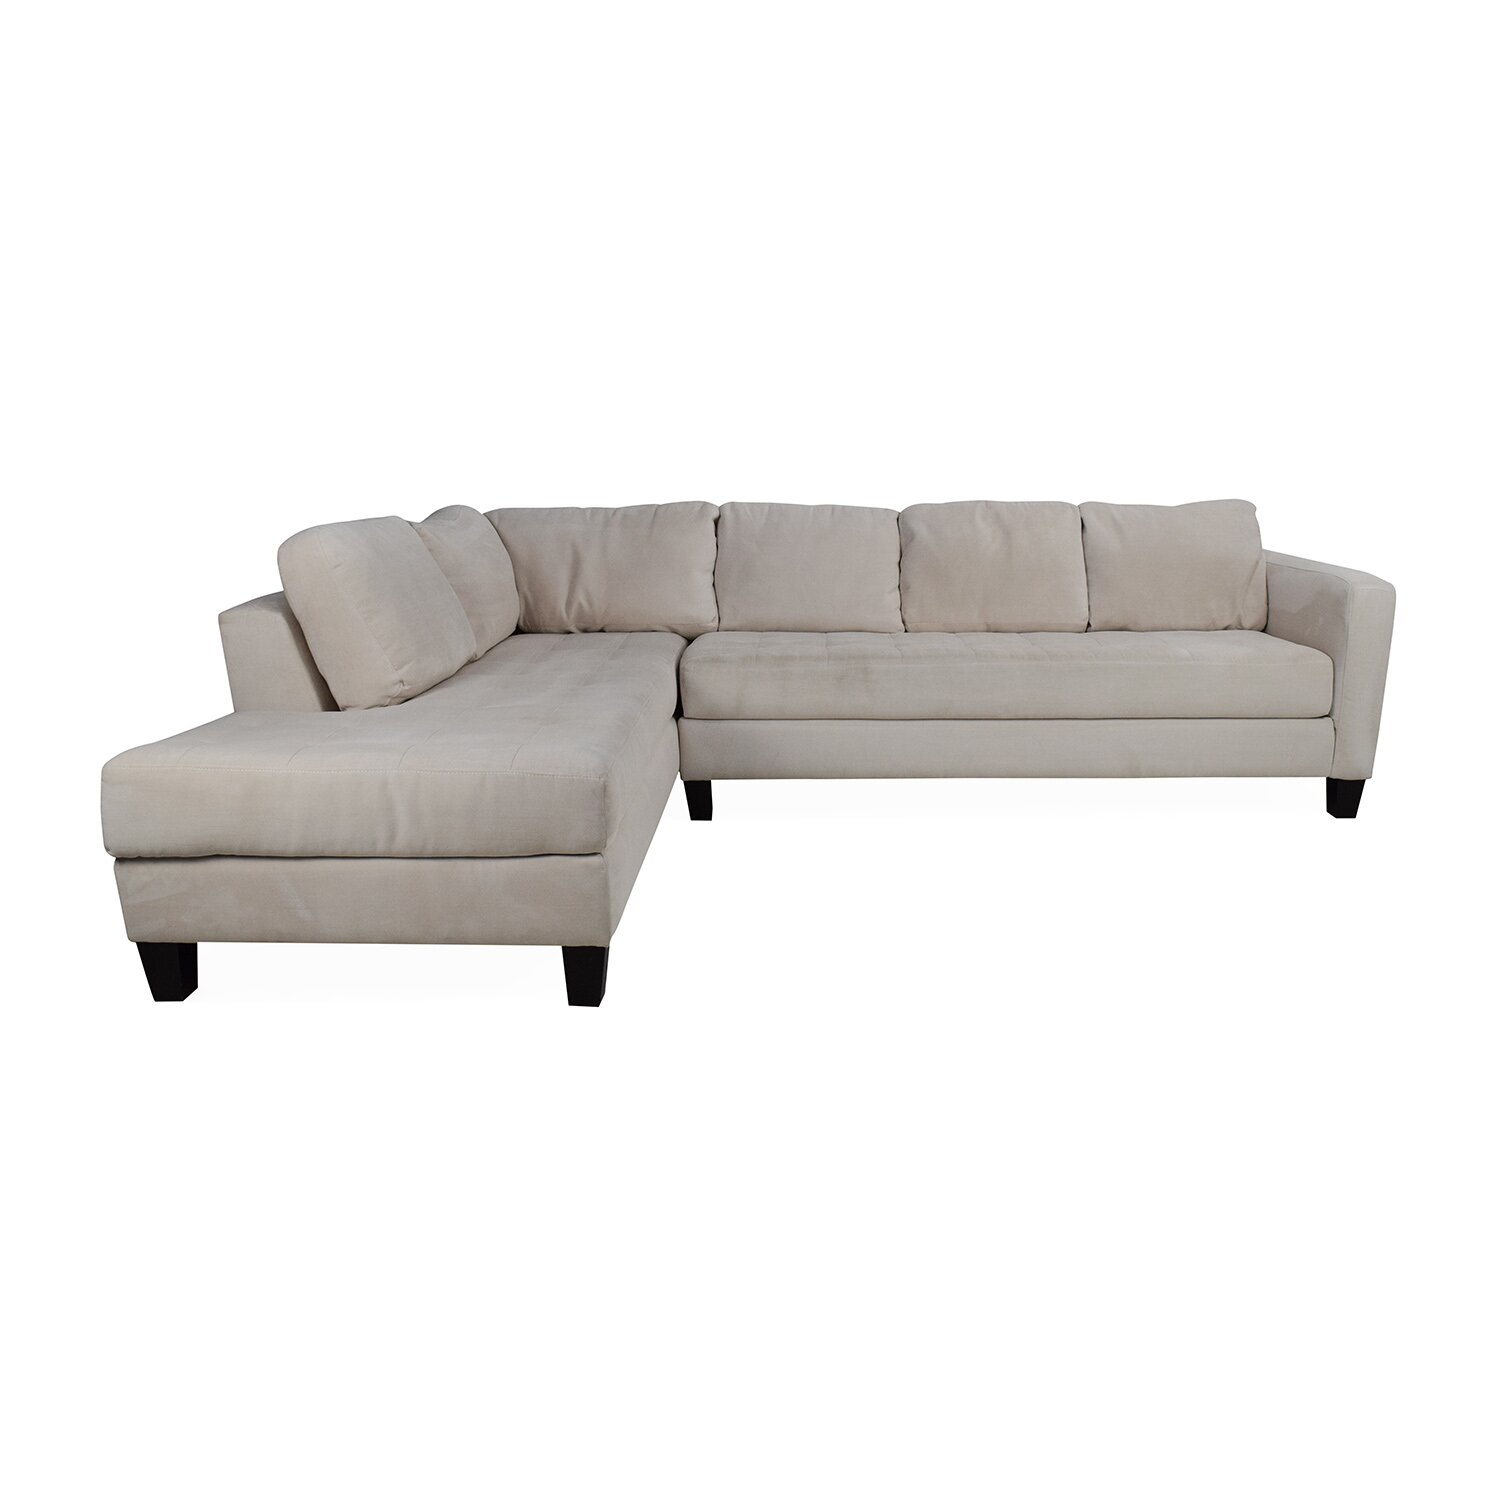 Macy's White Leather Sofa | Macys Sofa | Macys Sectional Sofa